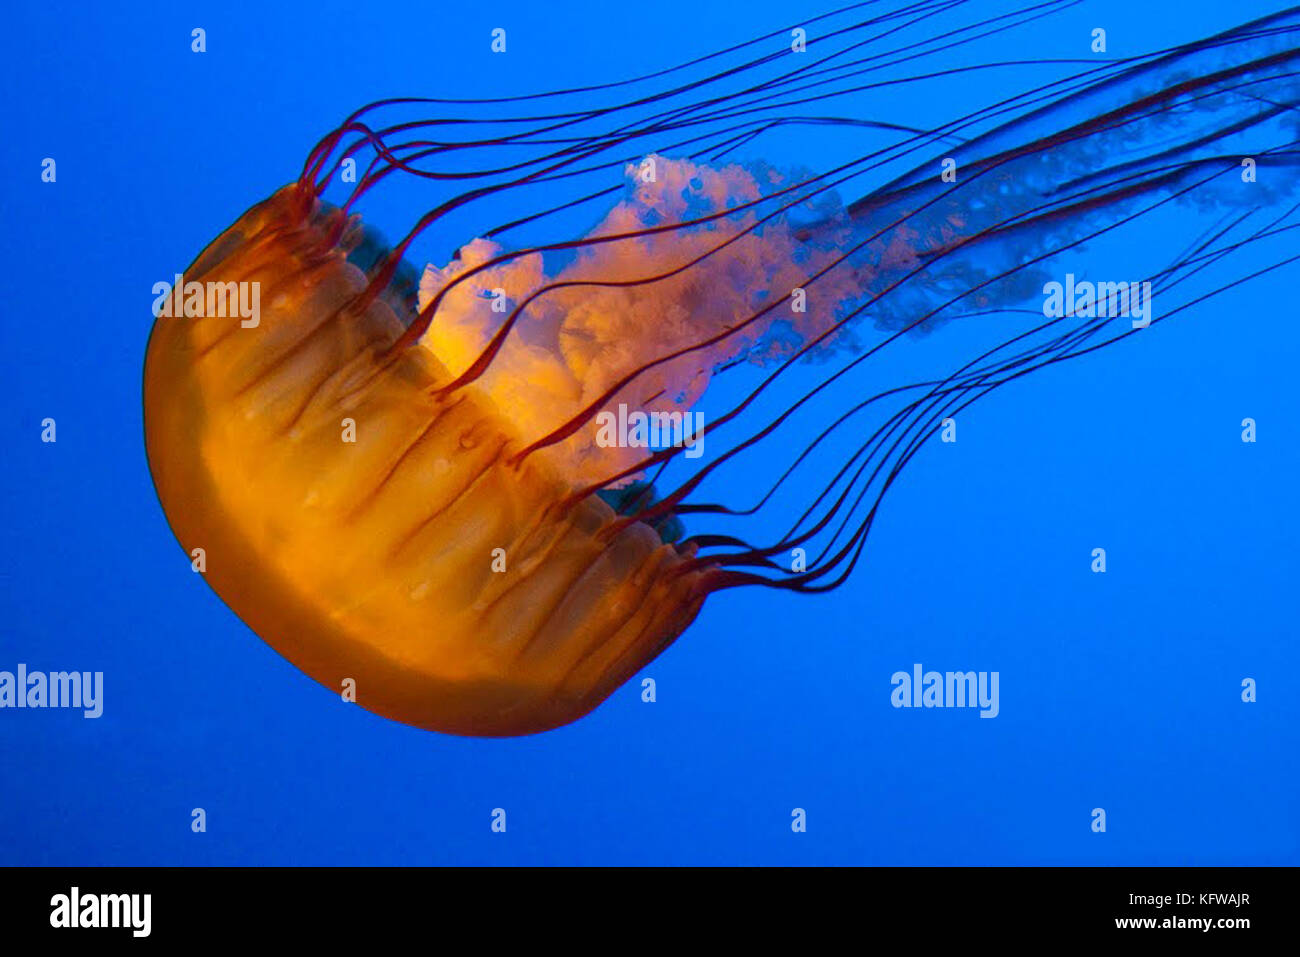 Jellyfish on a blue background. - Stock Image